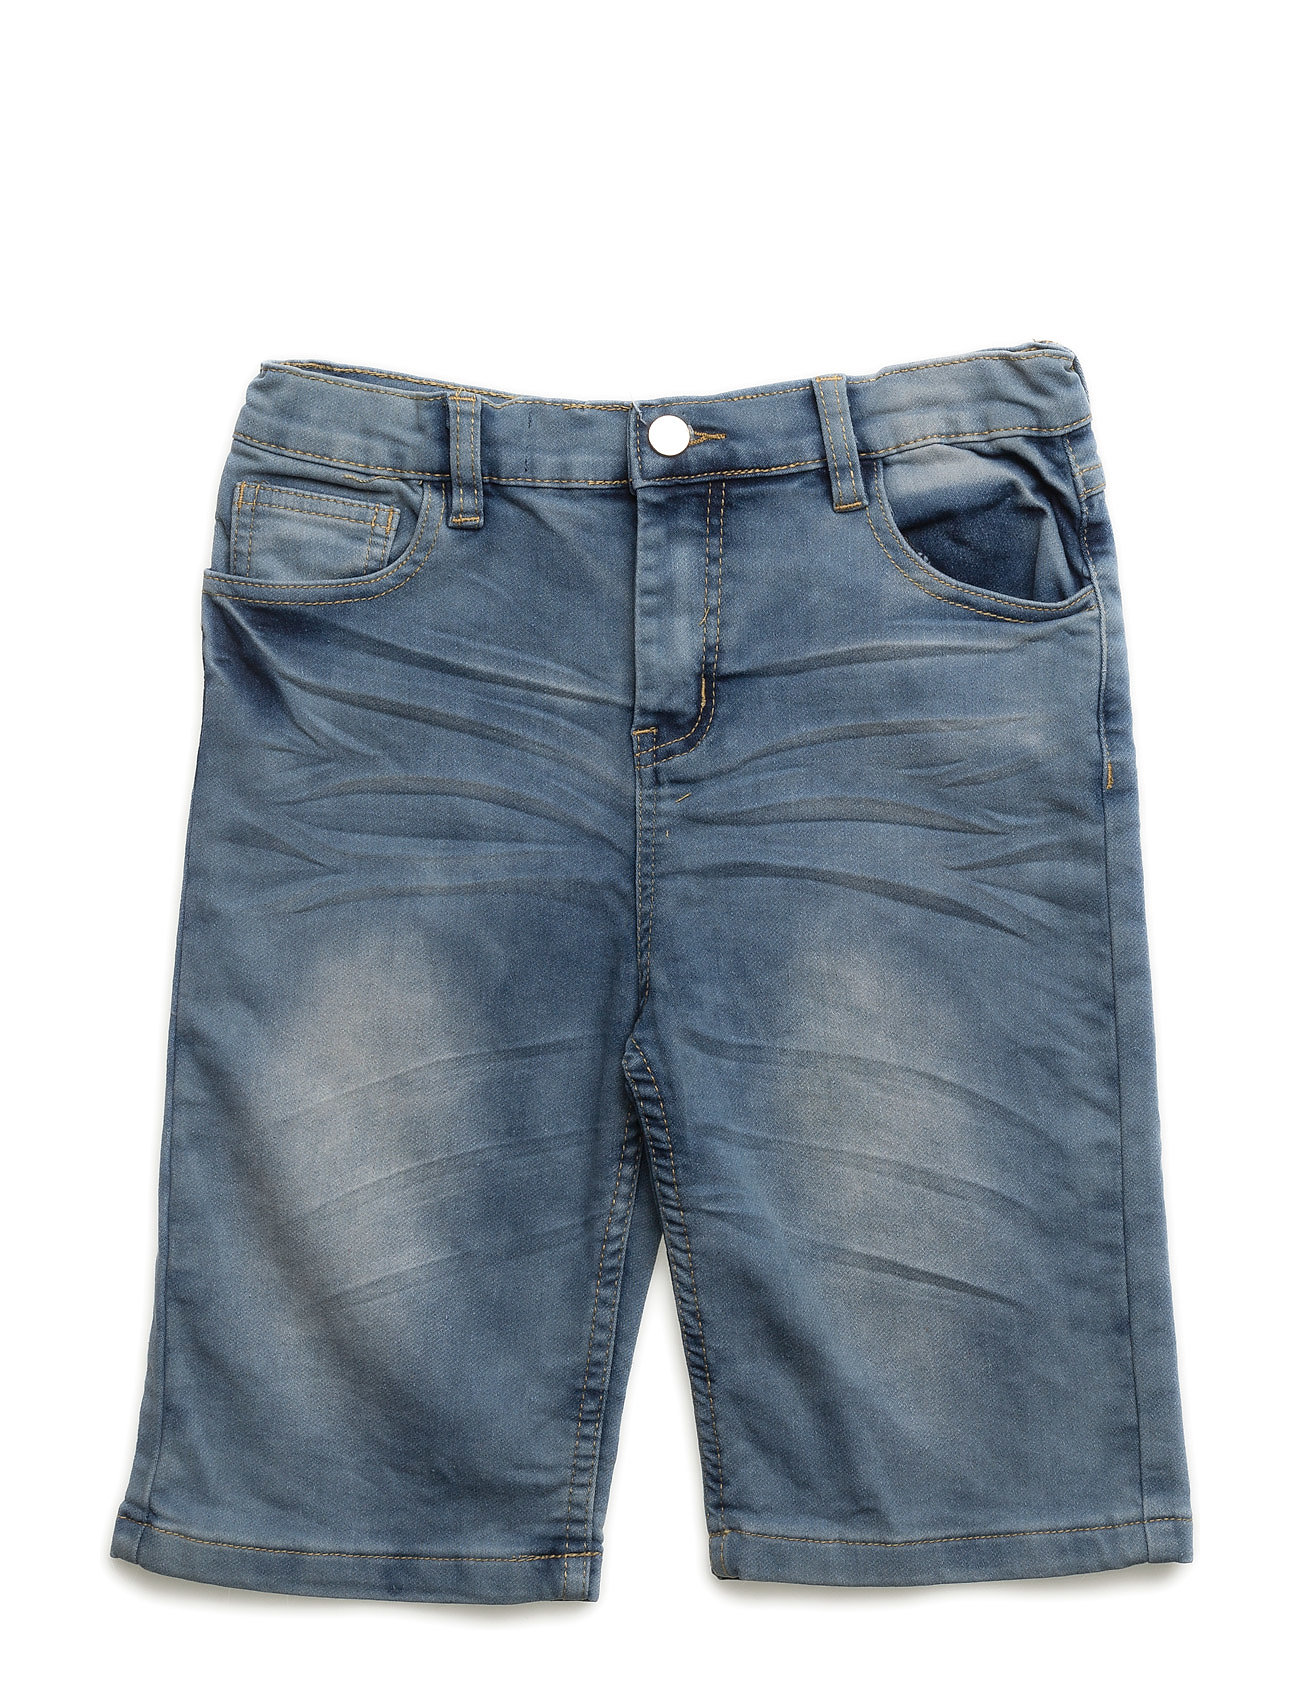 Shorts Soft Denim 31 thumbnail